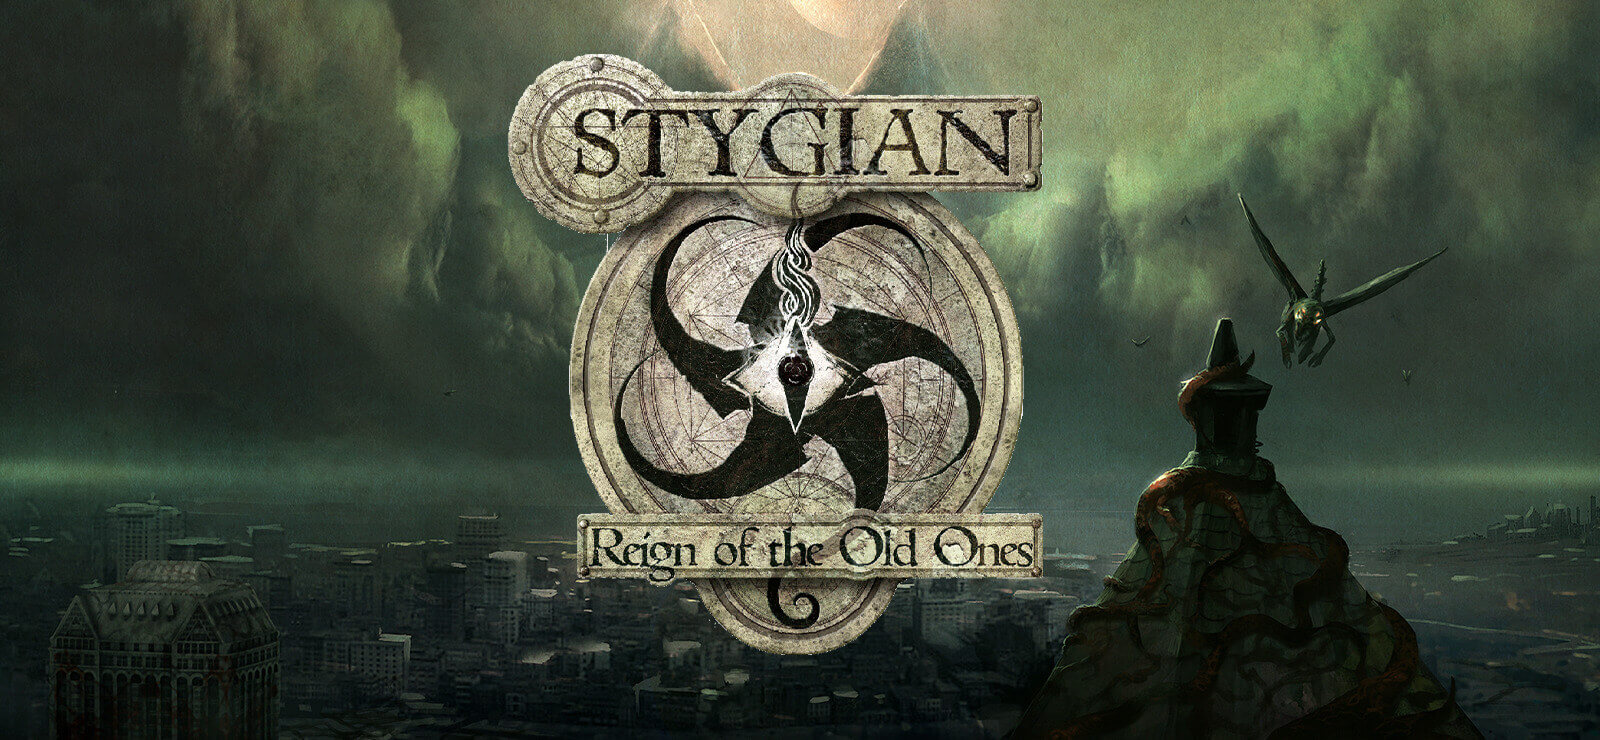 Stygian Video Gameplay